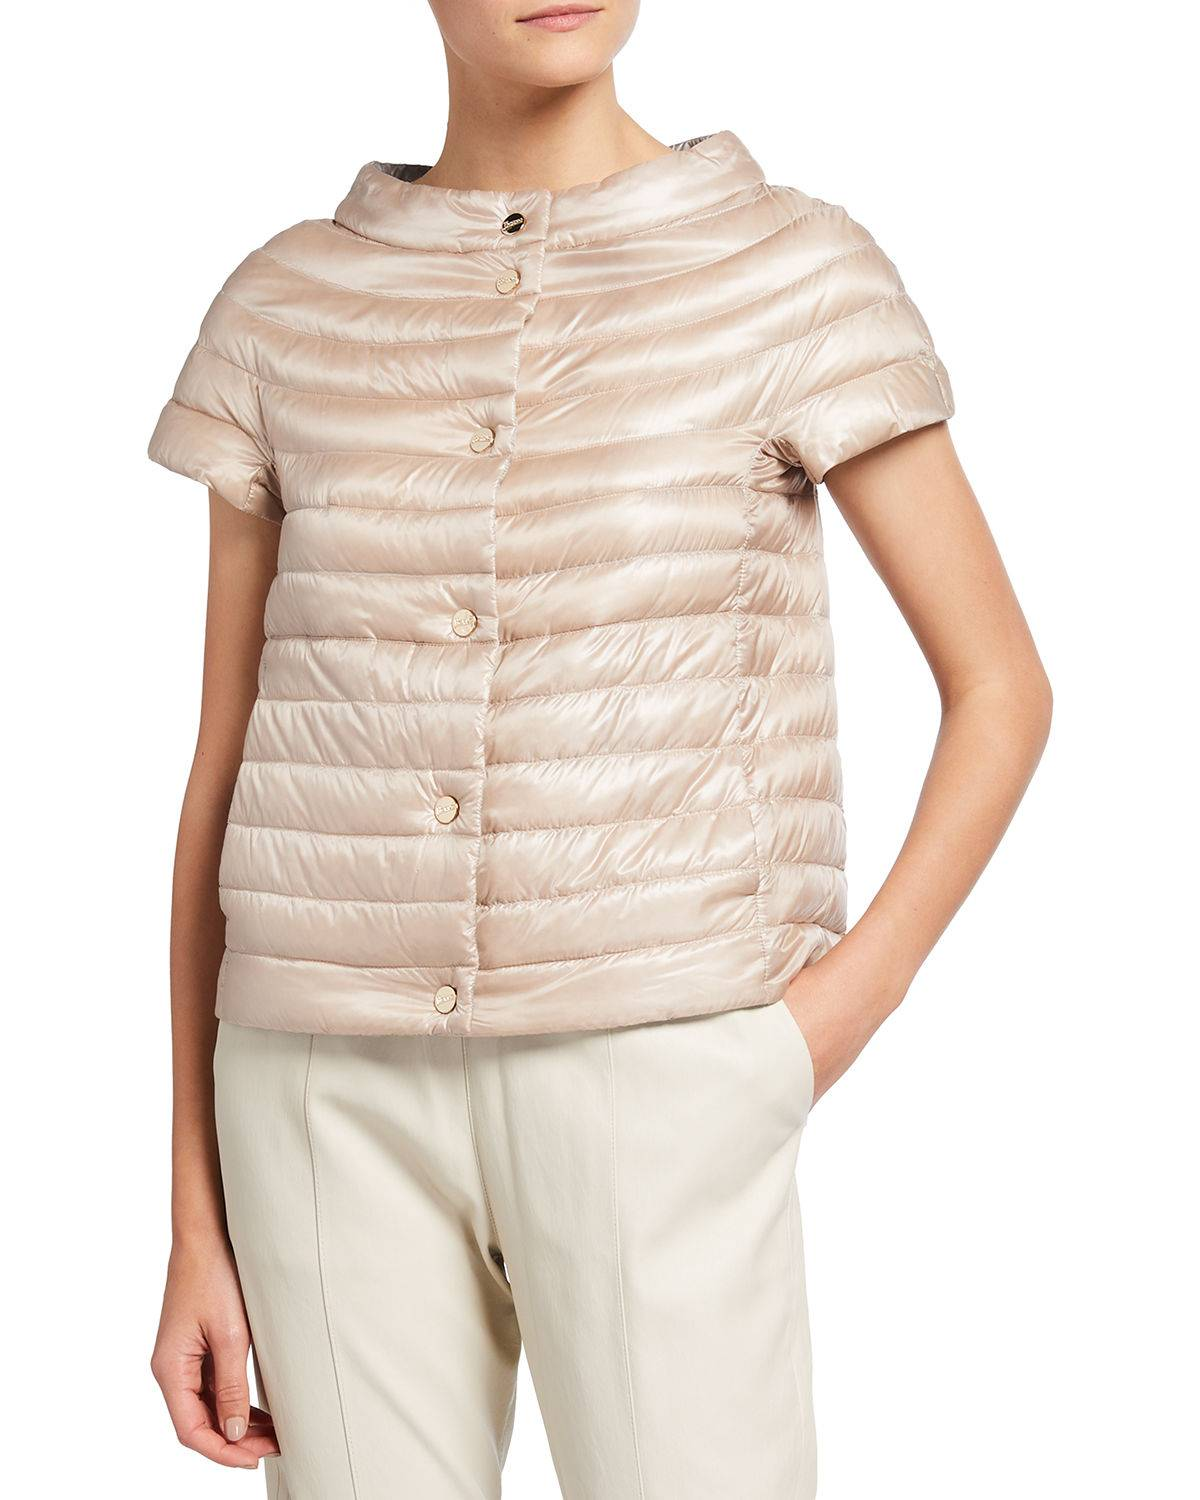 Herno Short-Sleeve Button-Closure Down Jacket - Size: 38 IT (2 US)